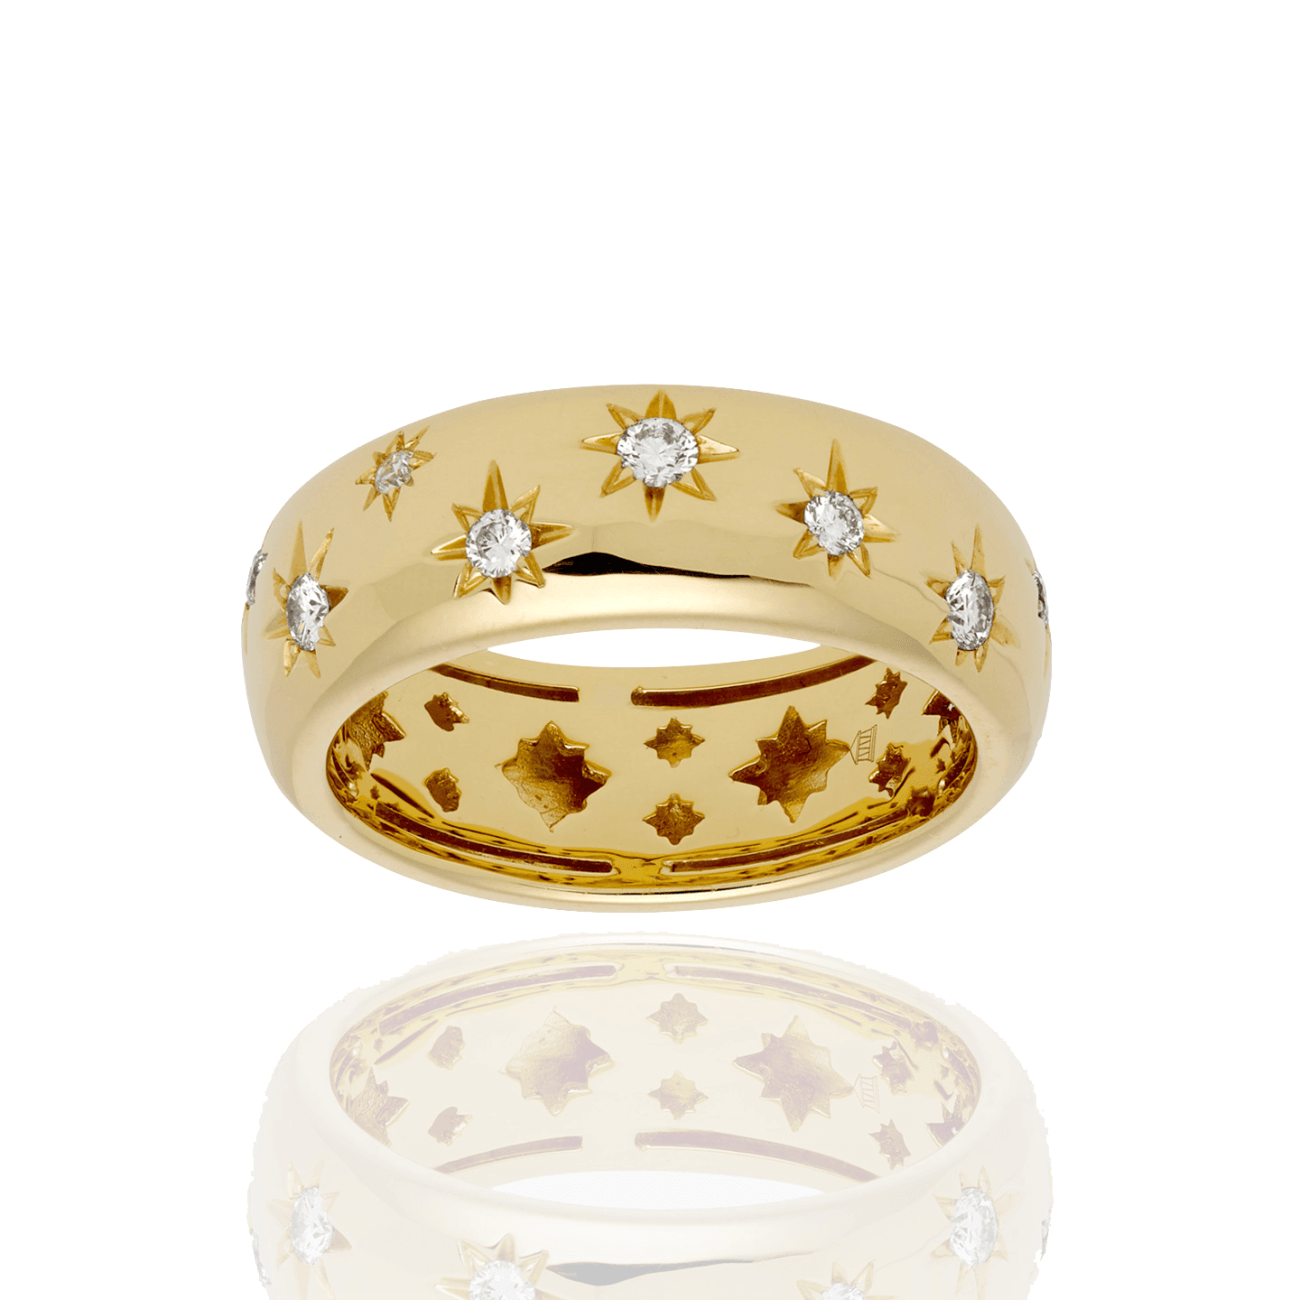 Temple St Clair Jewelry - 18K Cosmos Band Ring with diamond | Manfredi Jewels